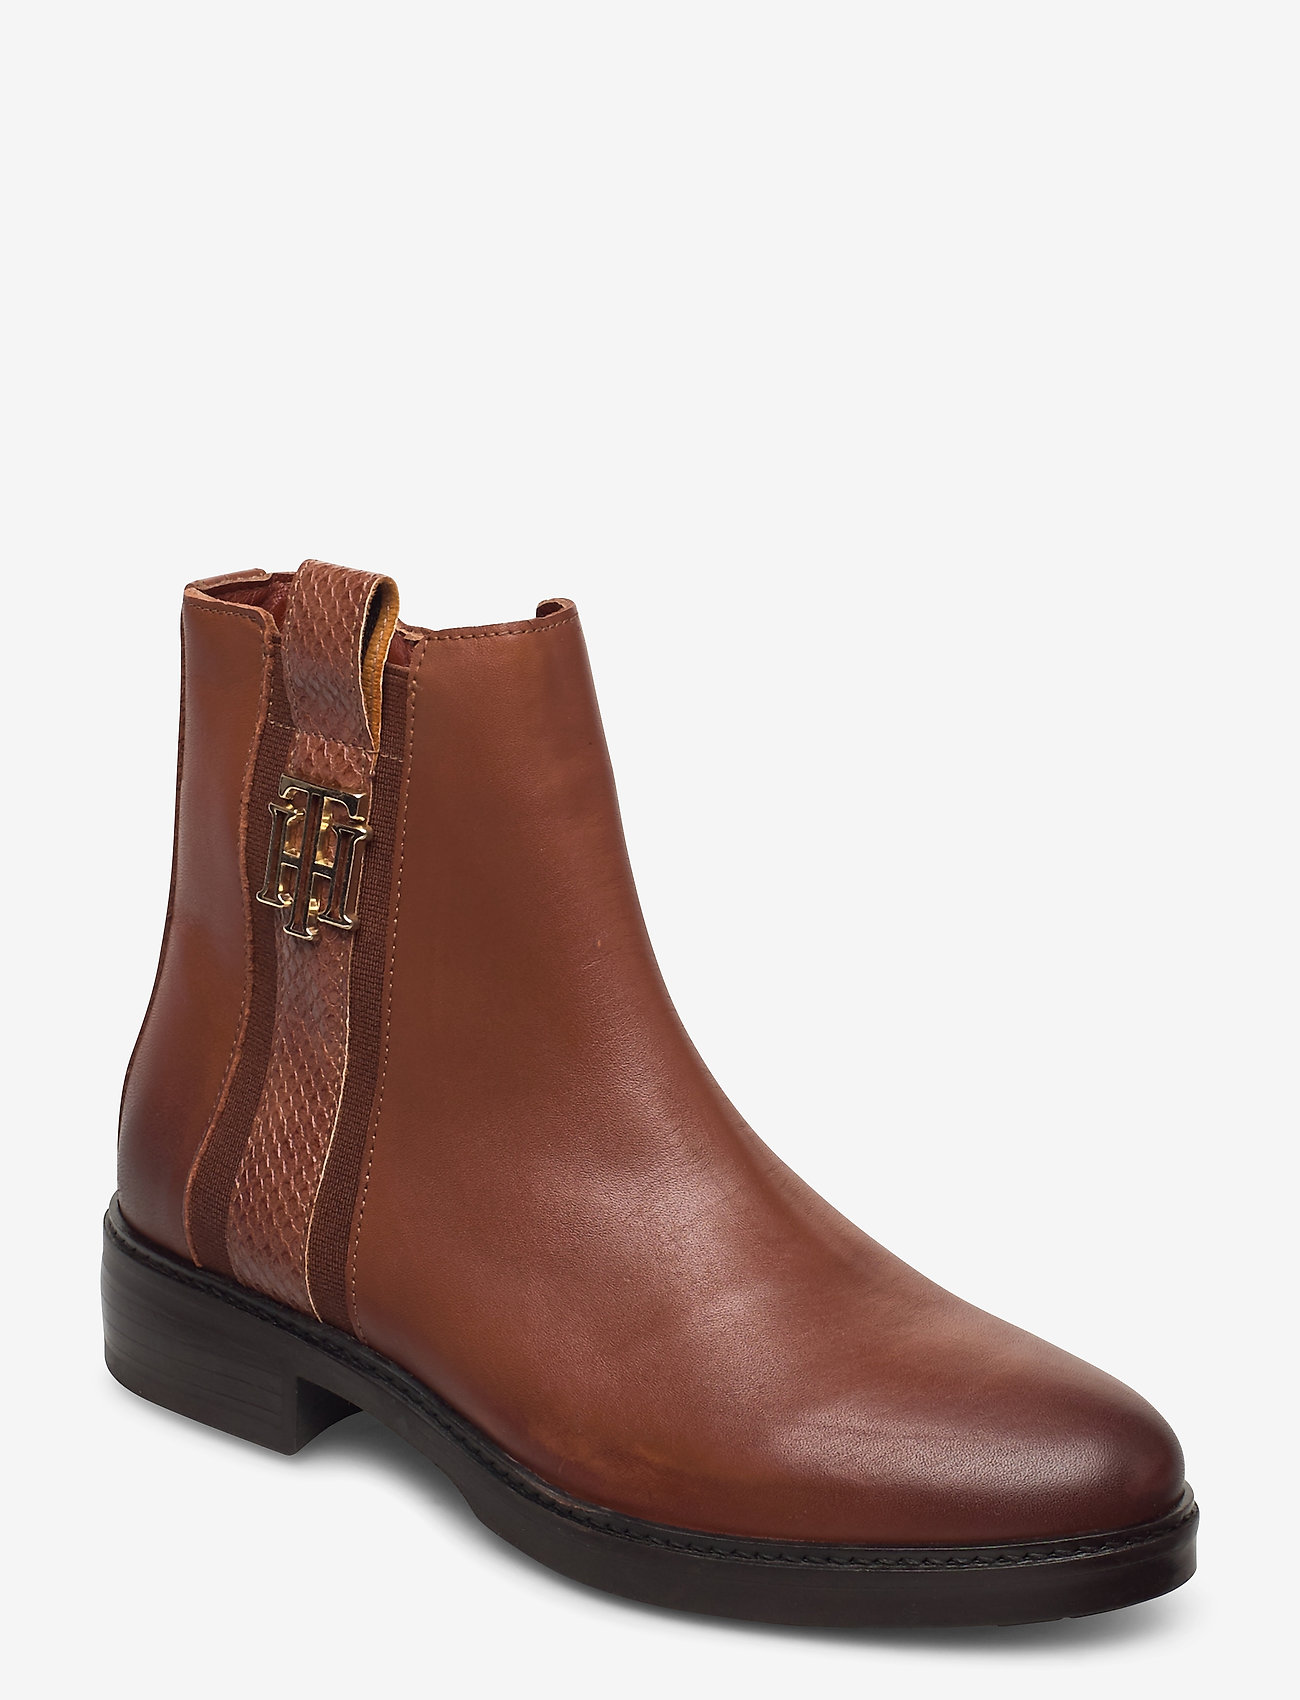 Tommy Hilfiger - TH INTERLOCK LEATHER FLAT BOOT - flat ankle boots - pumpkin paradise - 0